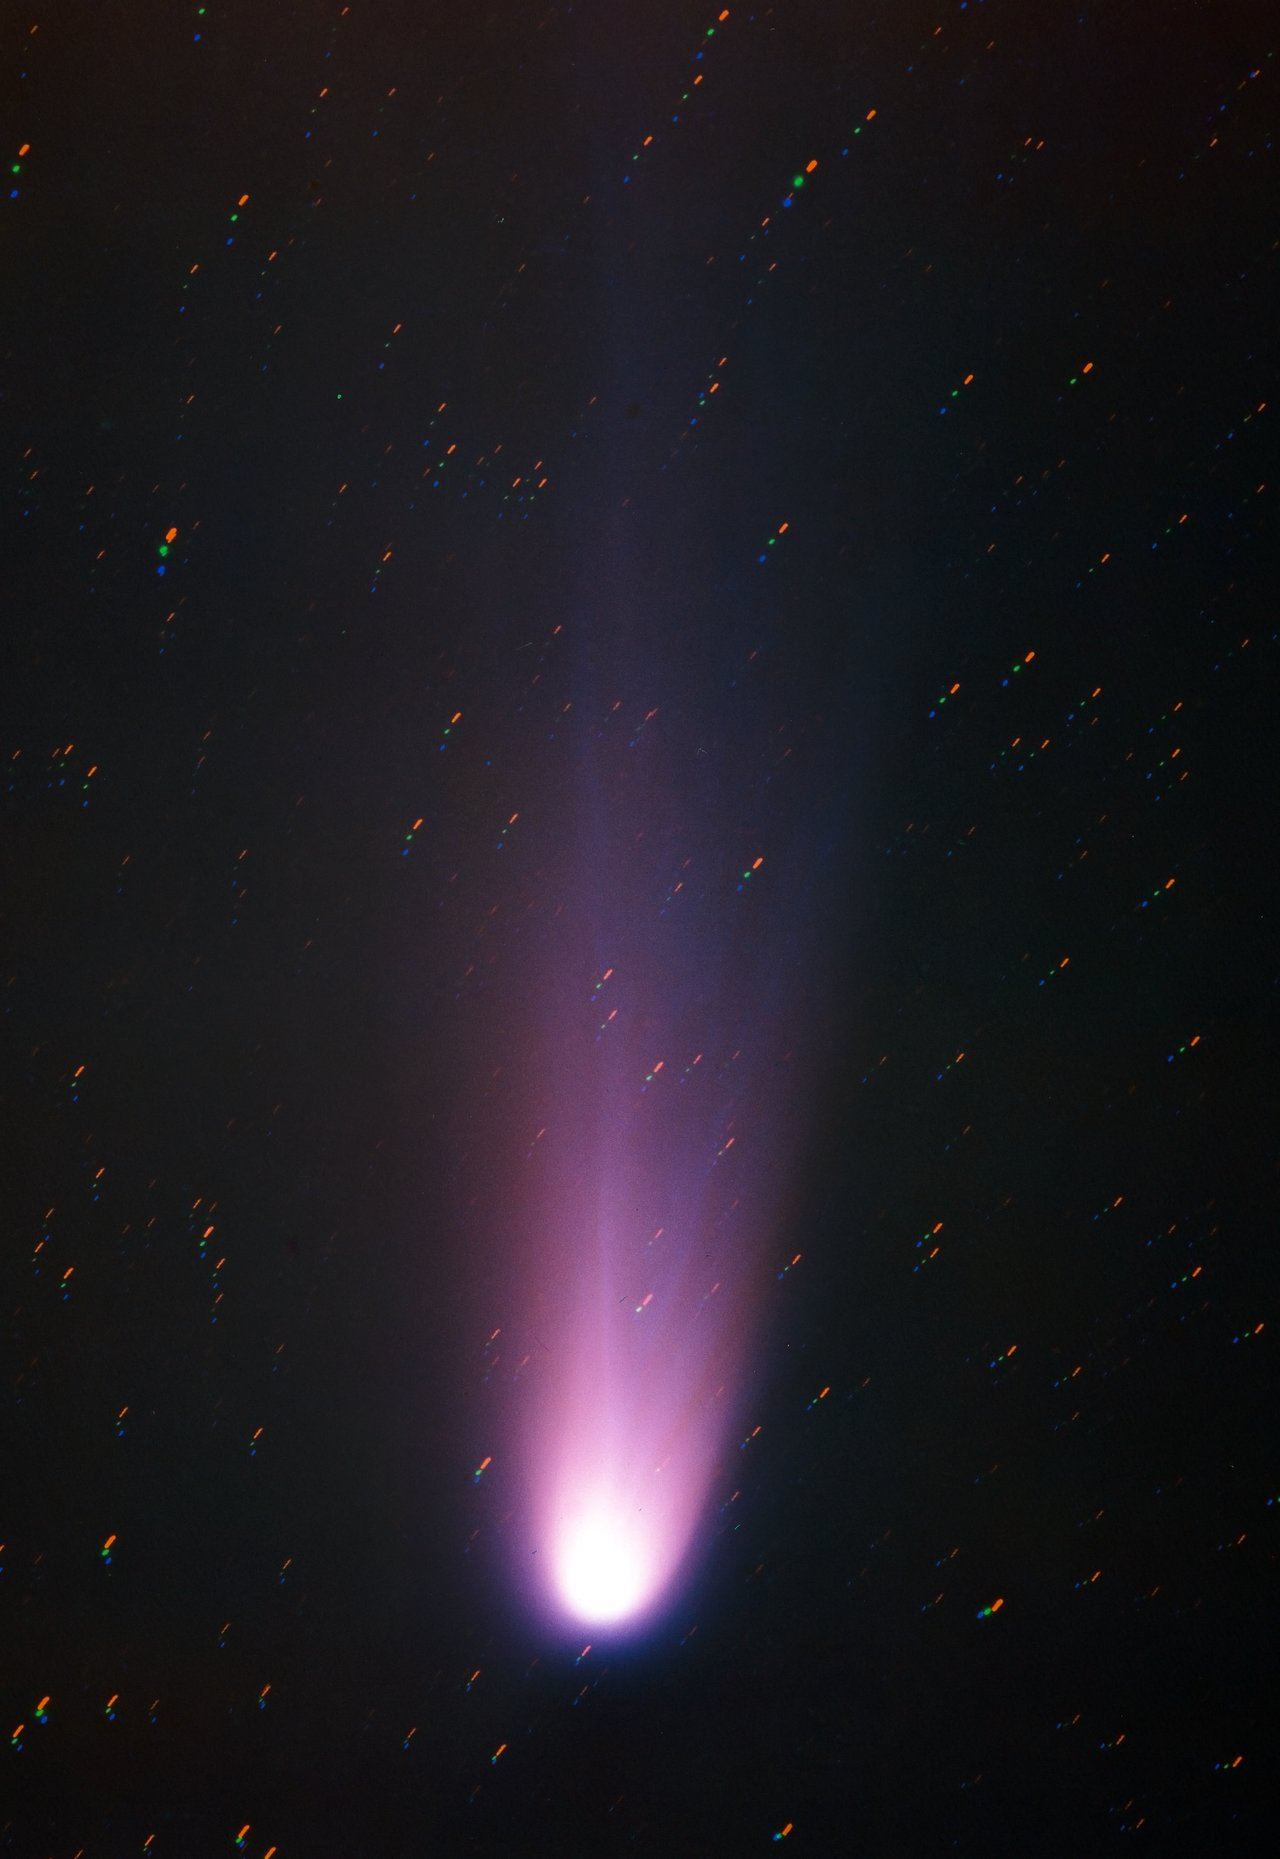 Comet Halley from La Silla in 1986